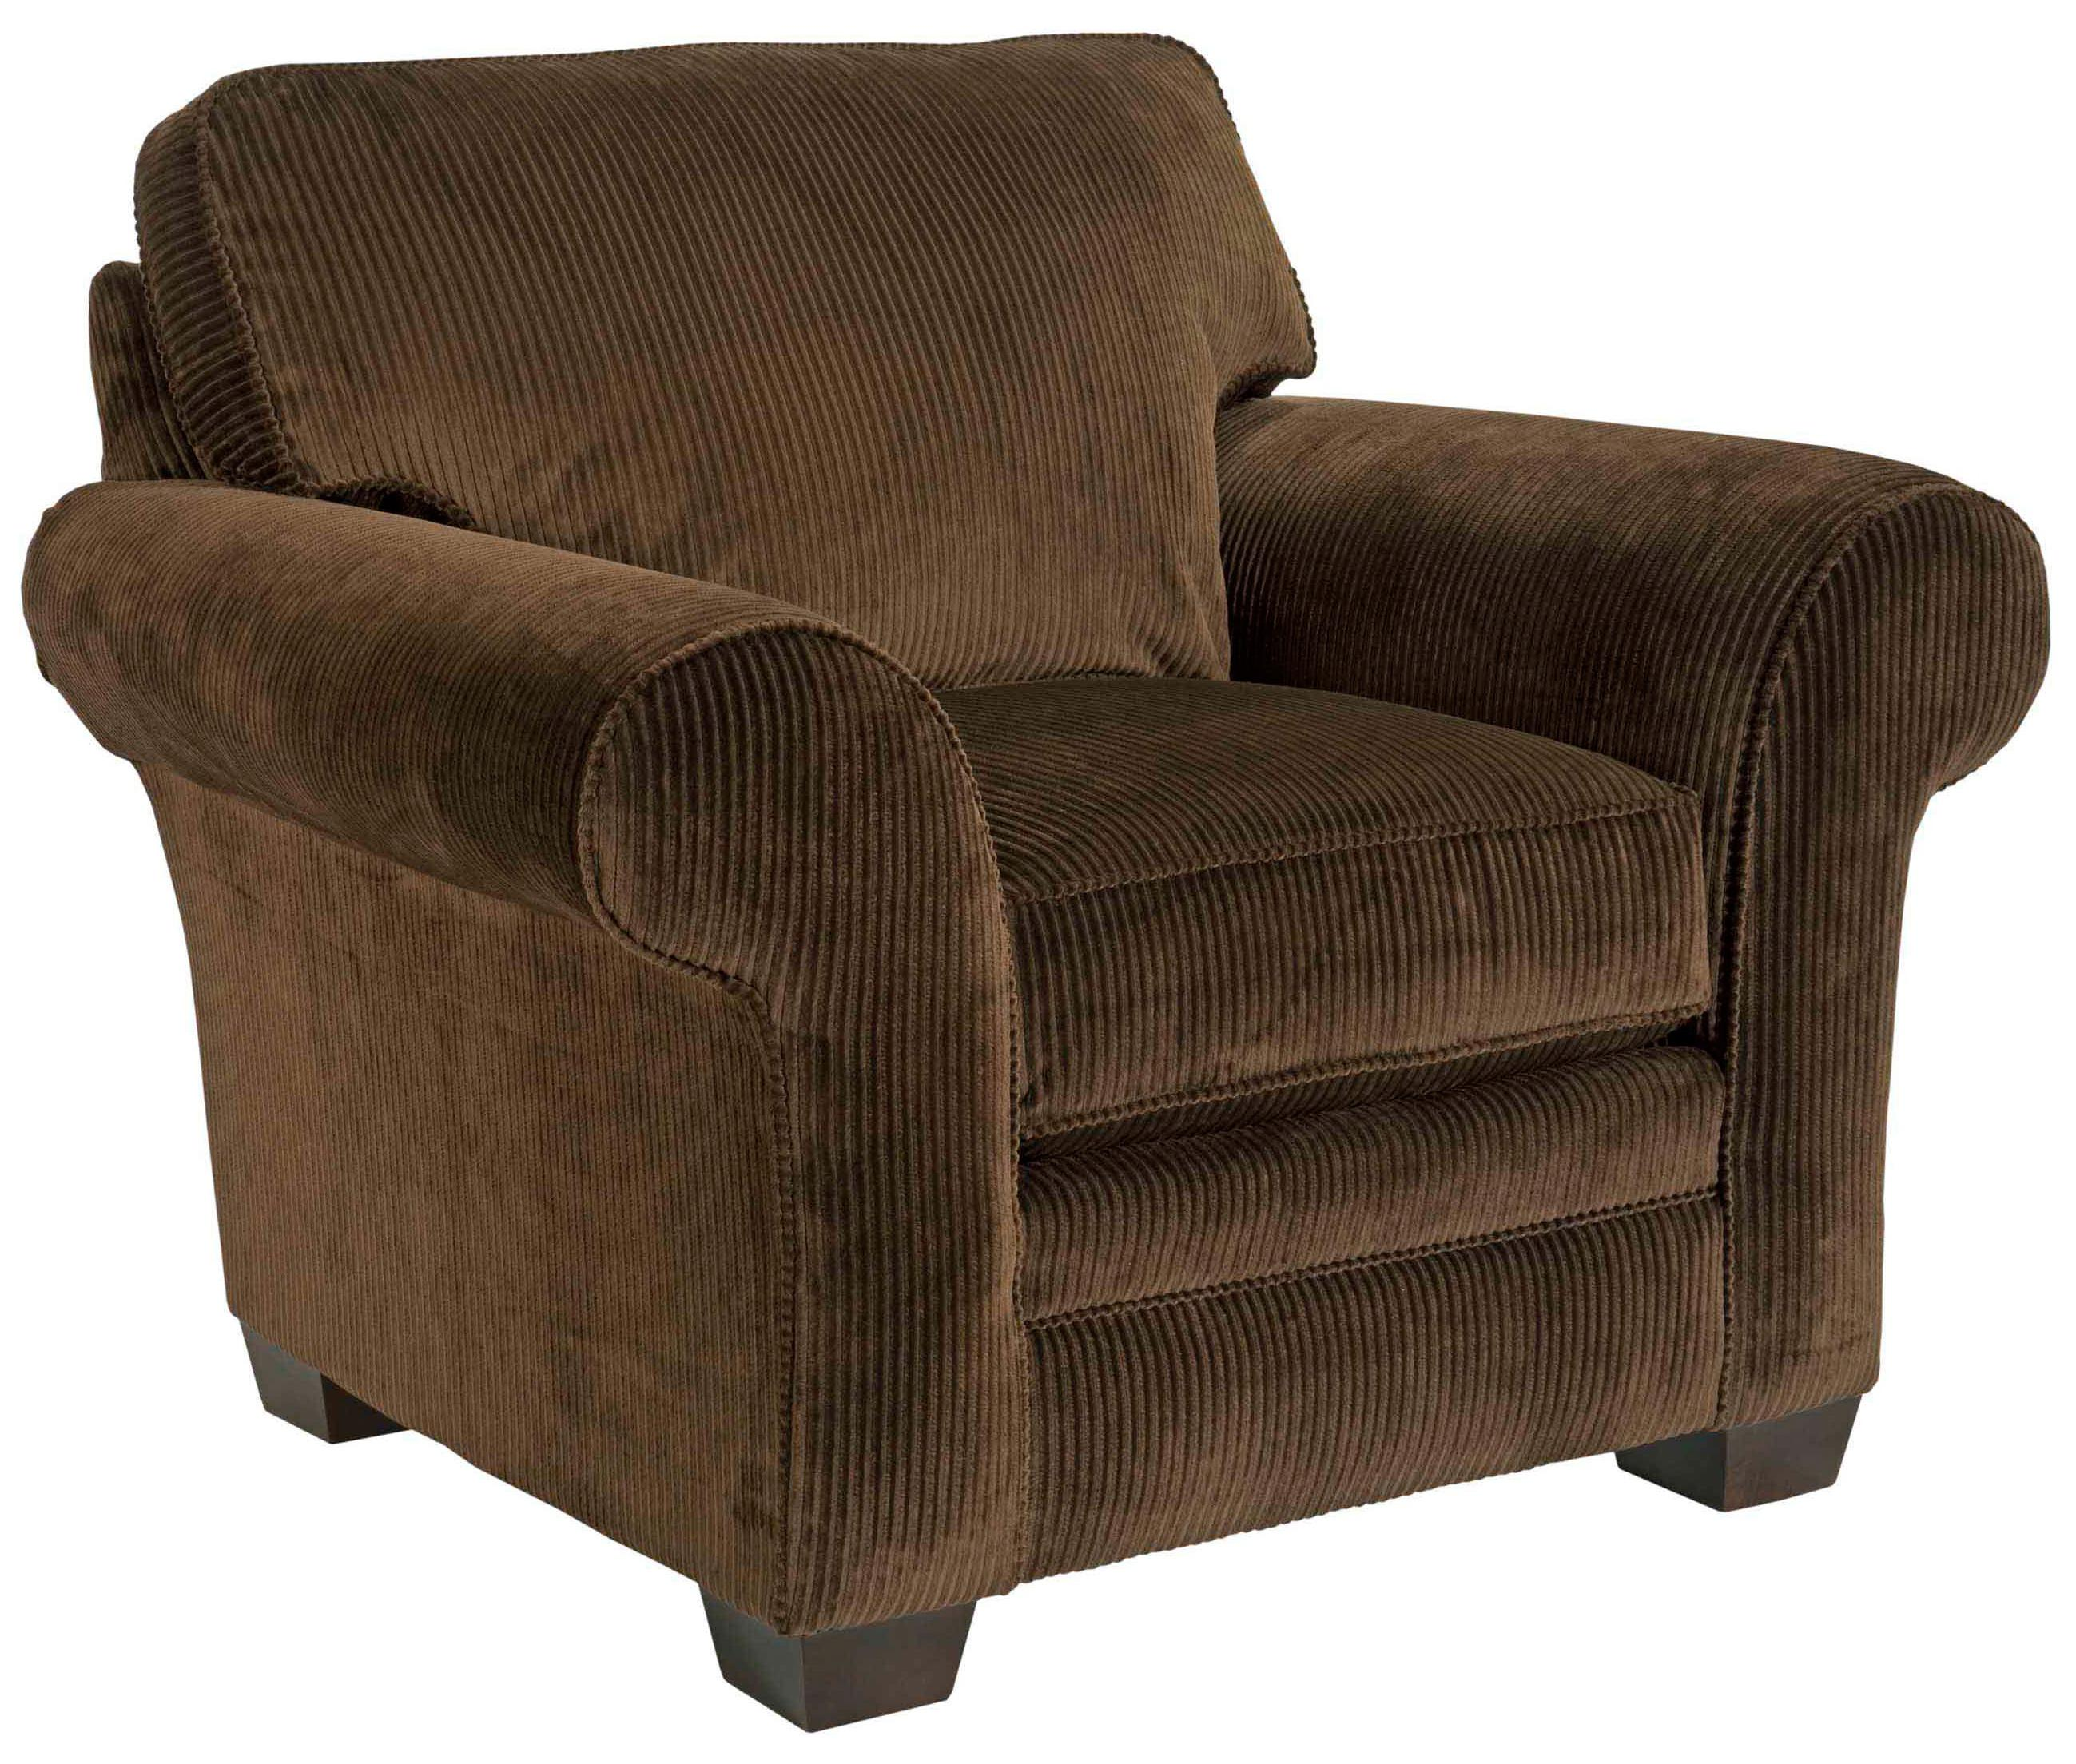 Broyhill Express Zachary 7902 0q Transitional Chair With Oversized Rolled Arms John V Schultz